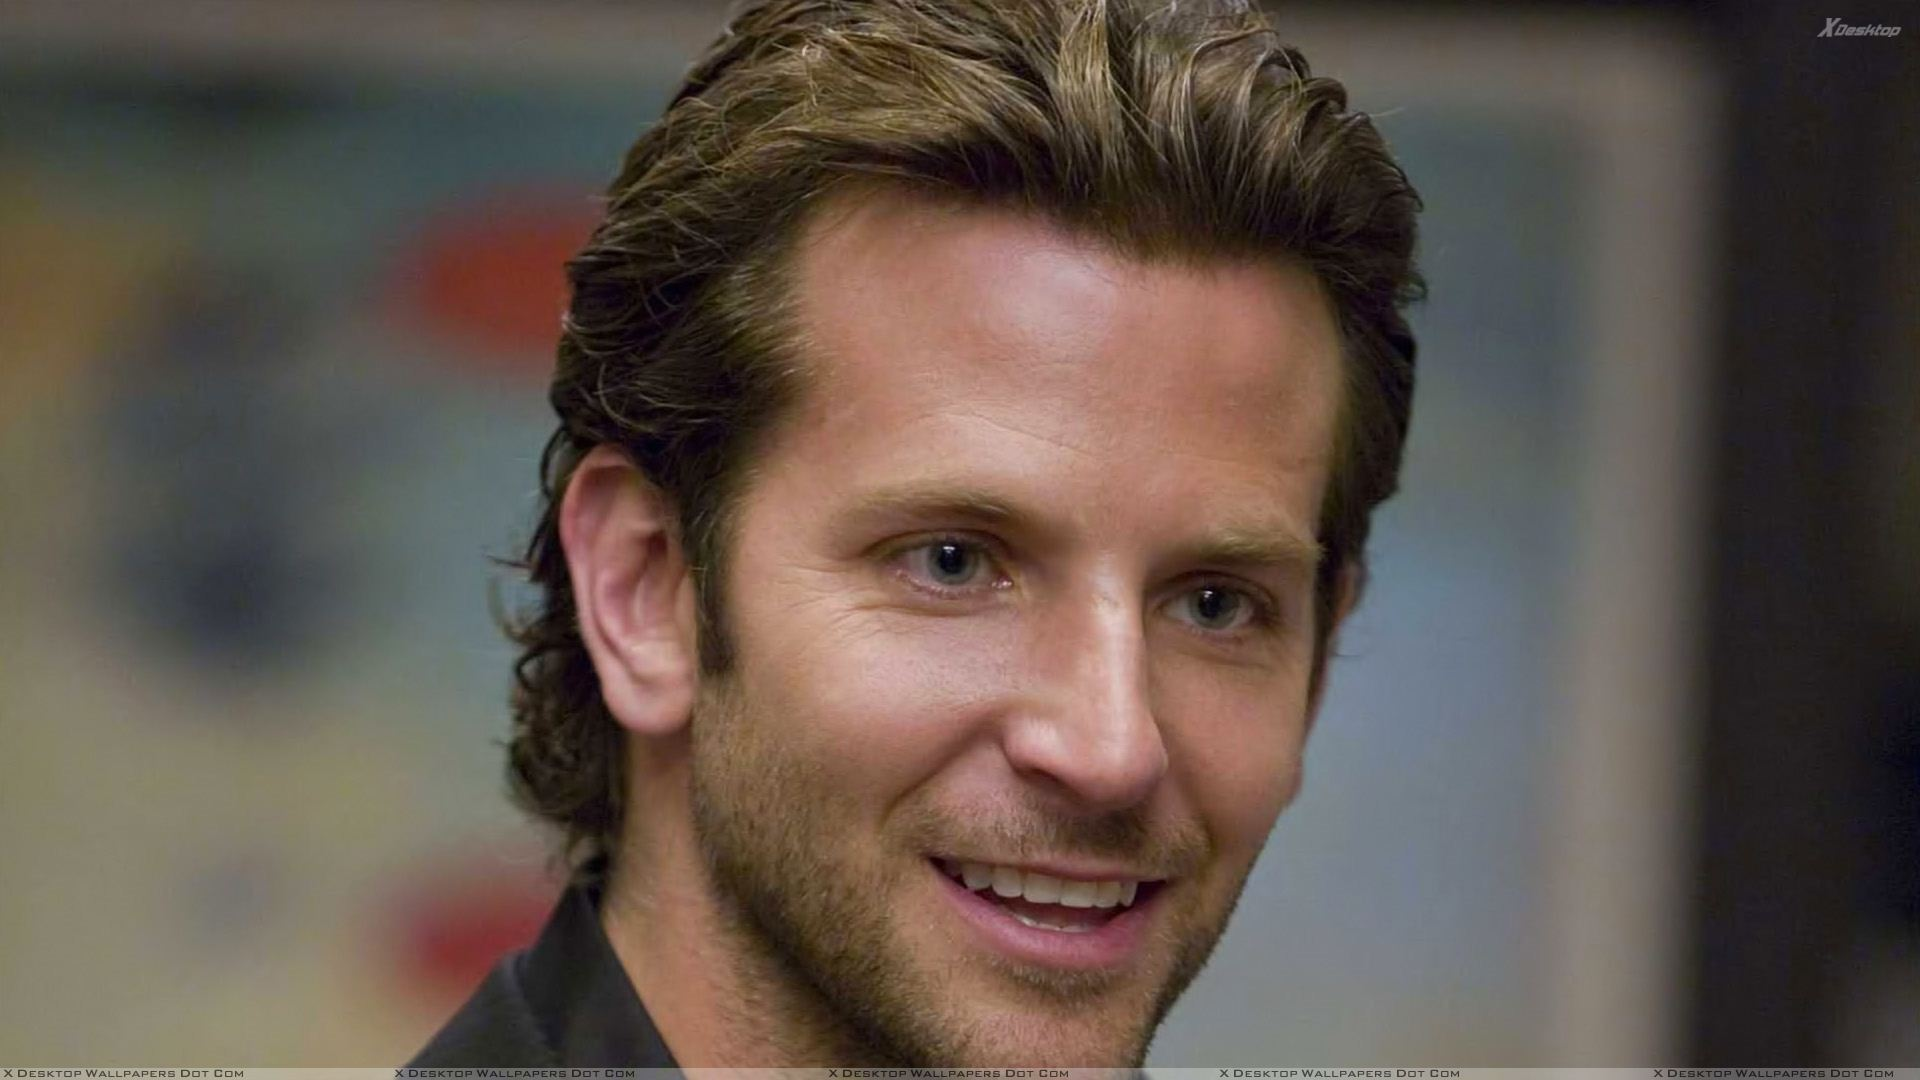 Bradley Cooper Wallpapers Photos amp Images in HD 1920x1080